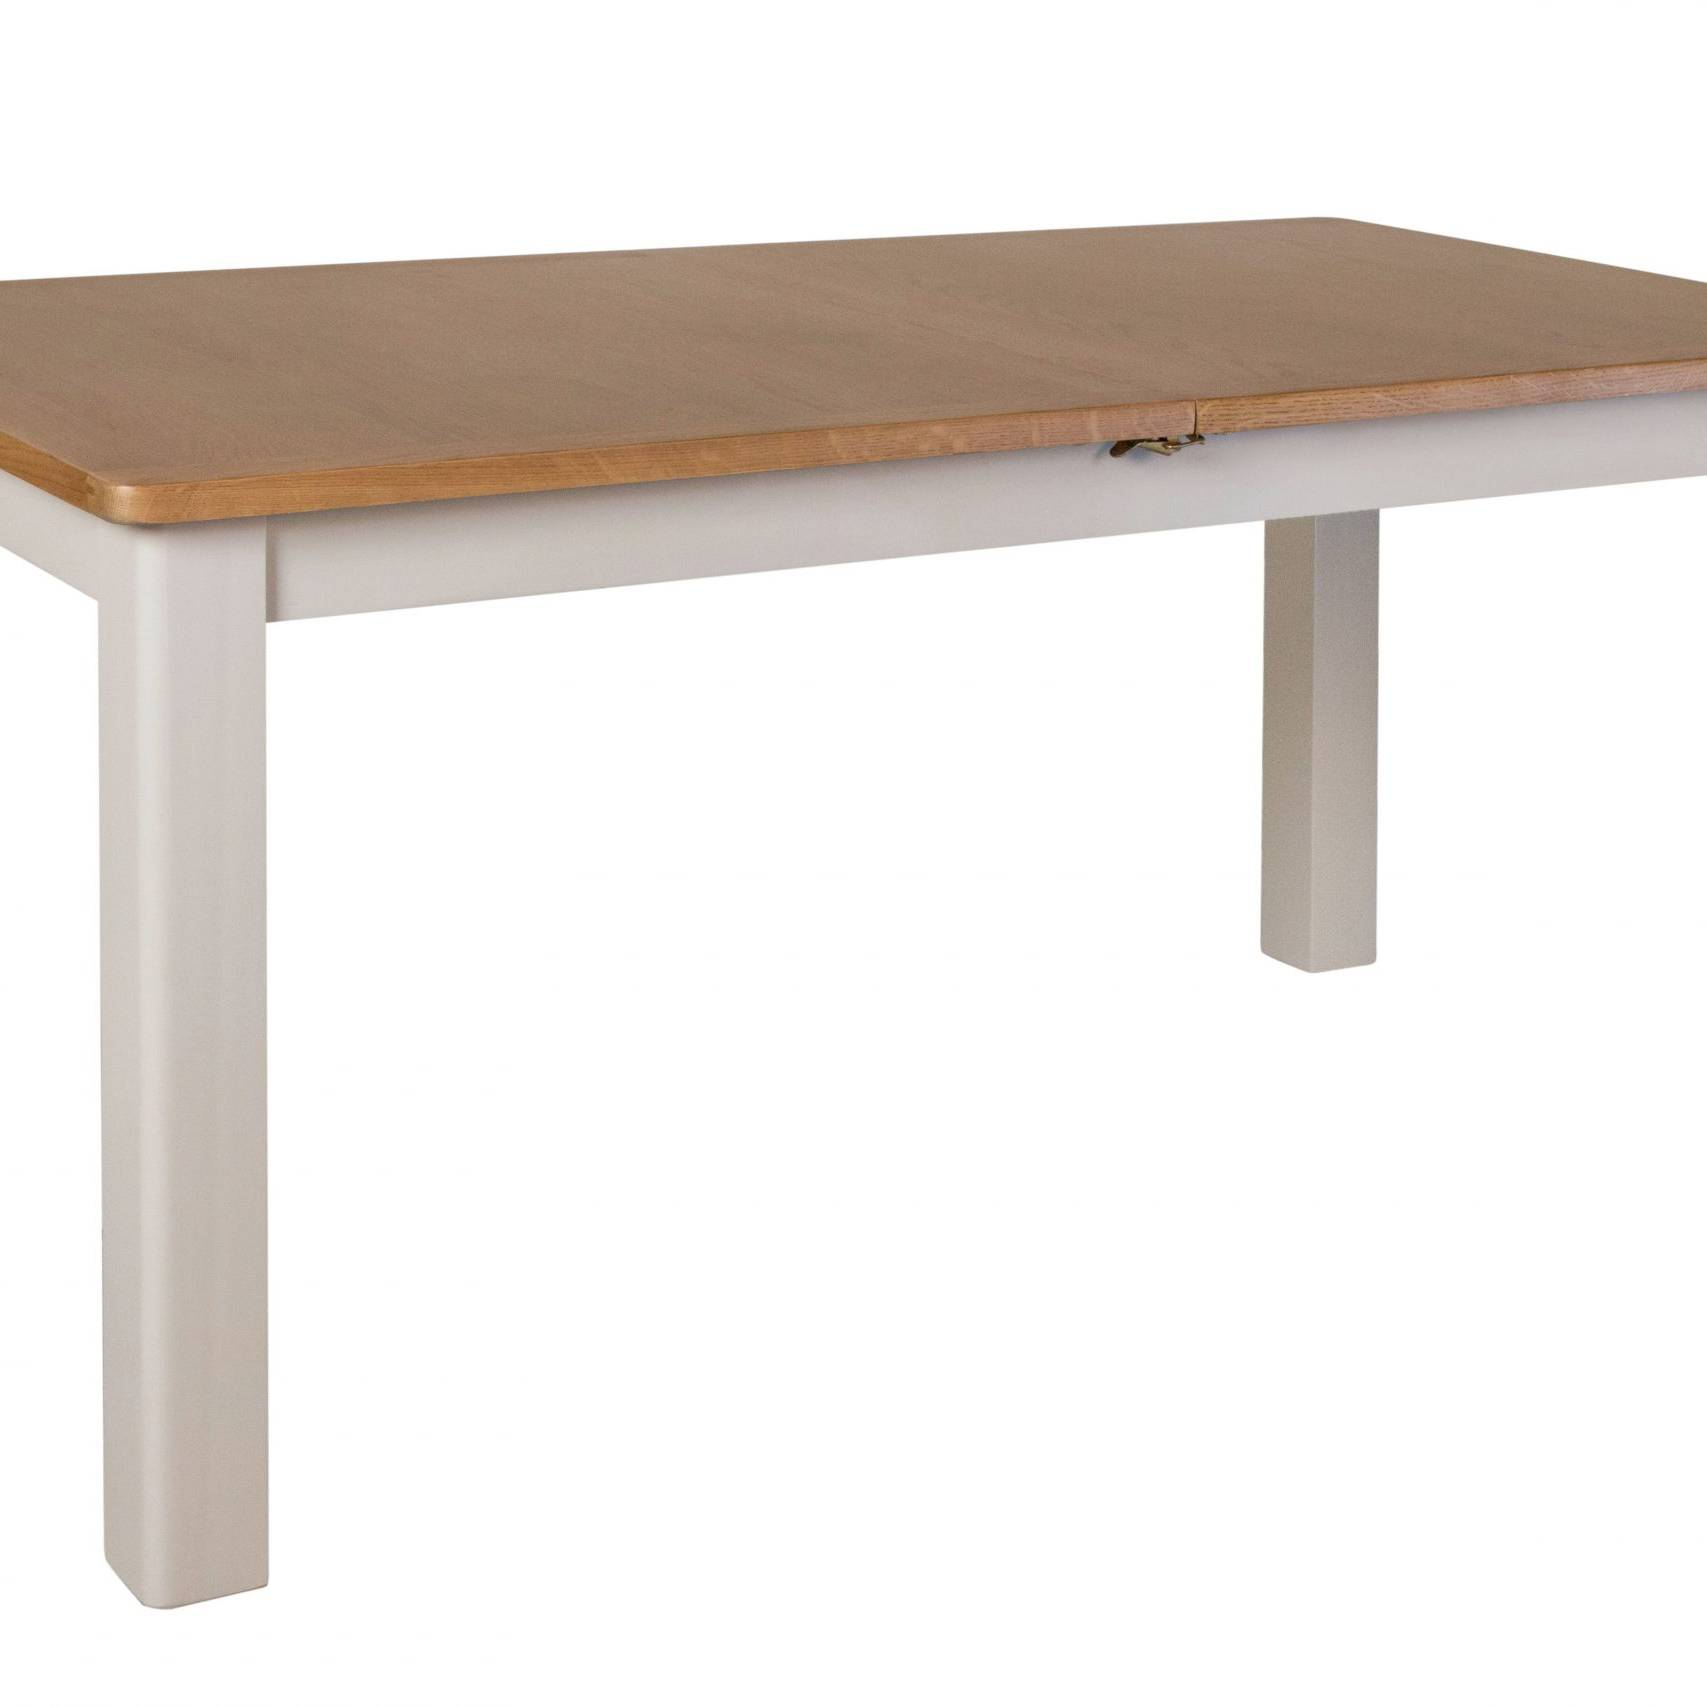 The Truffle - 1.6m Extending Table